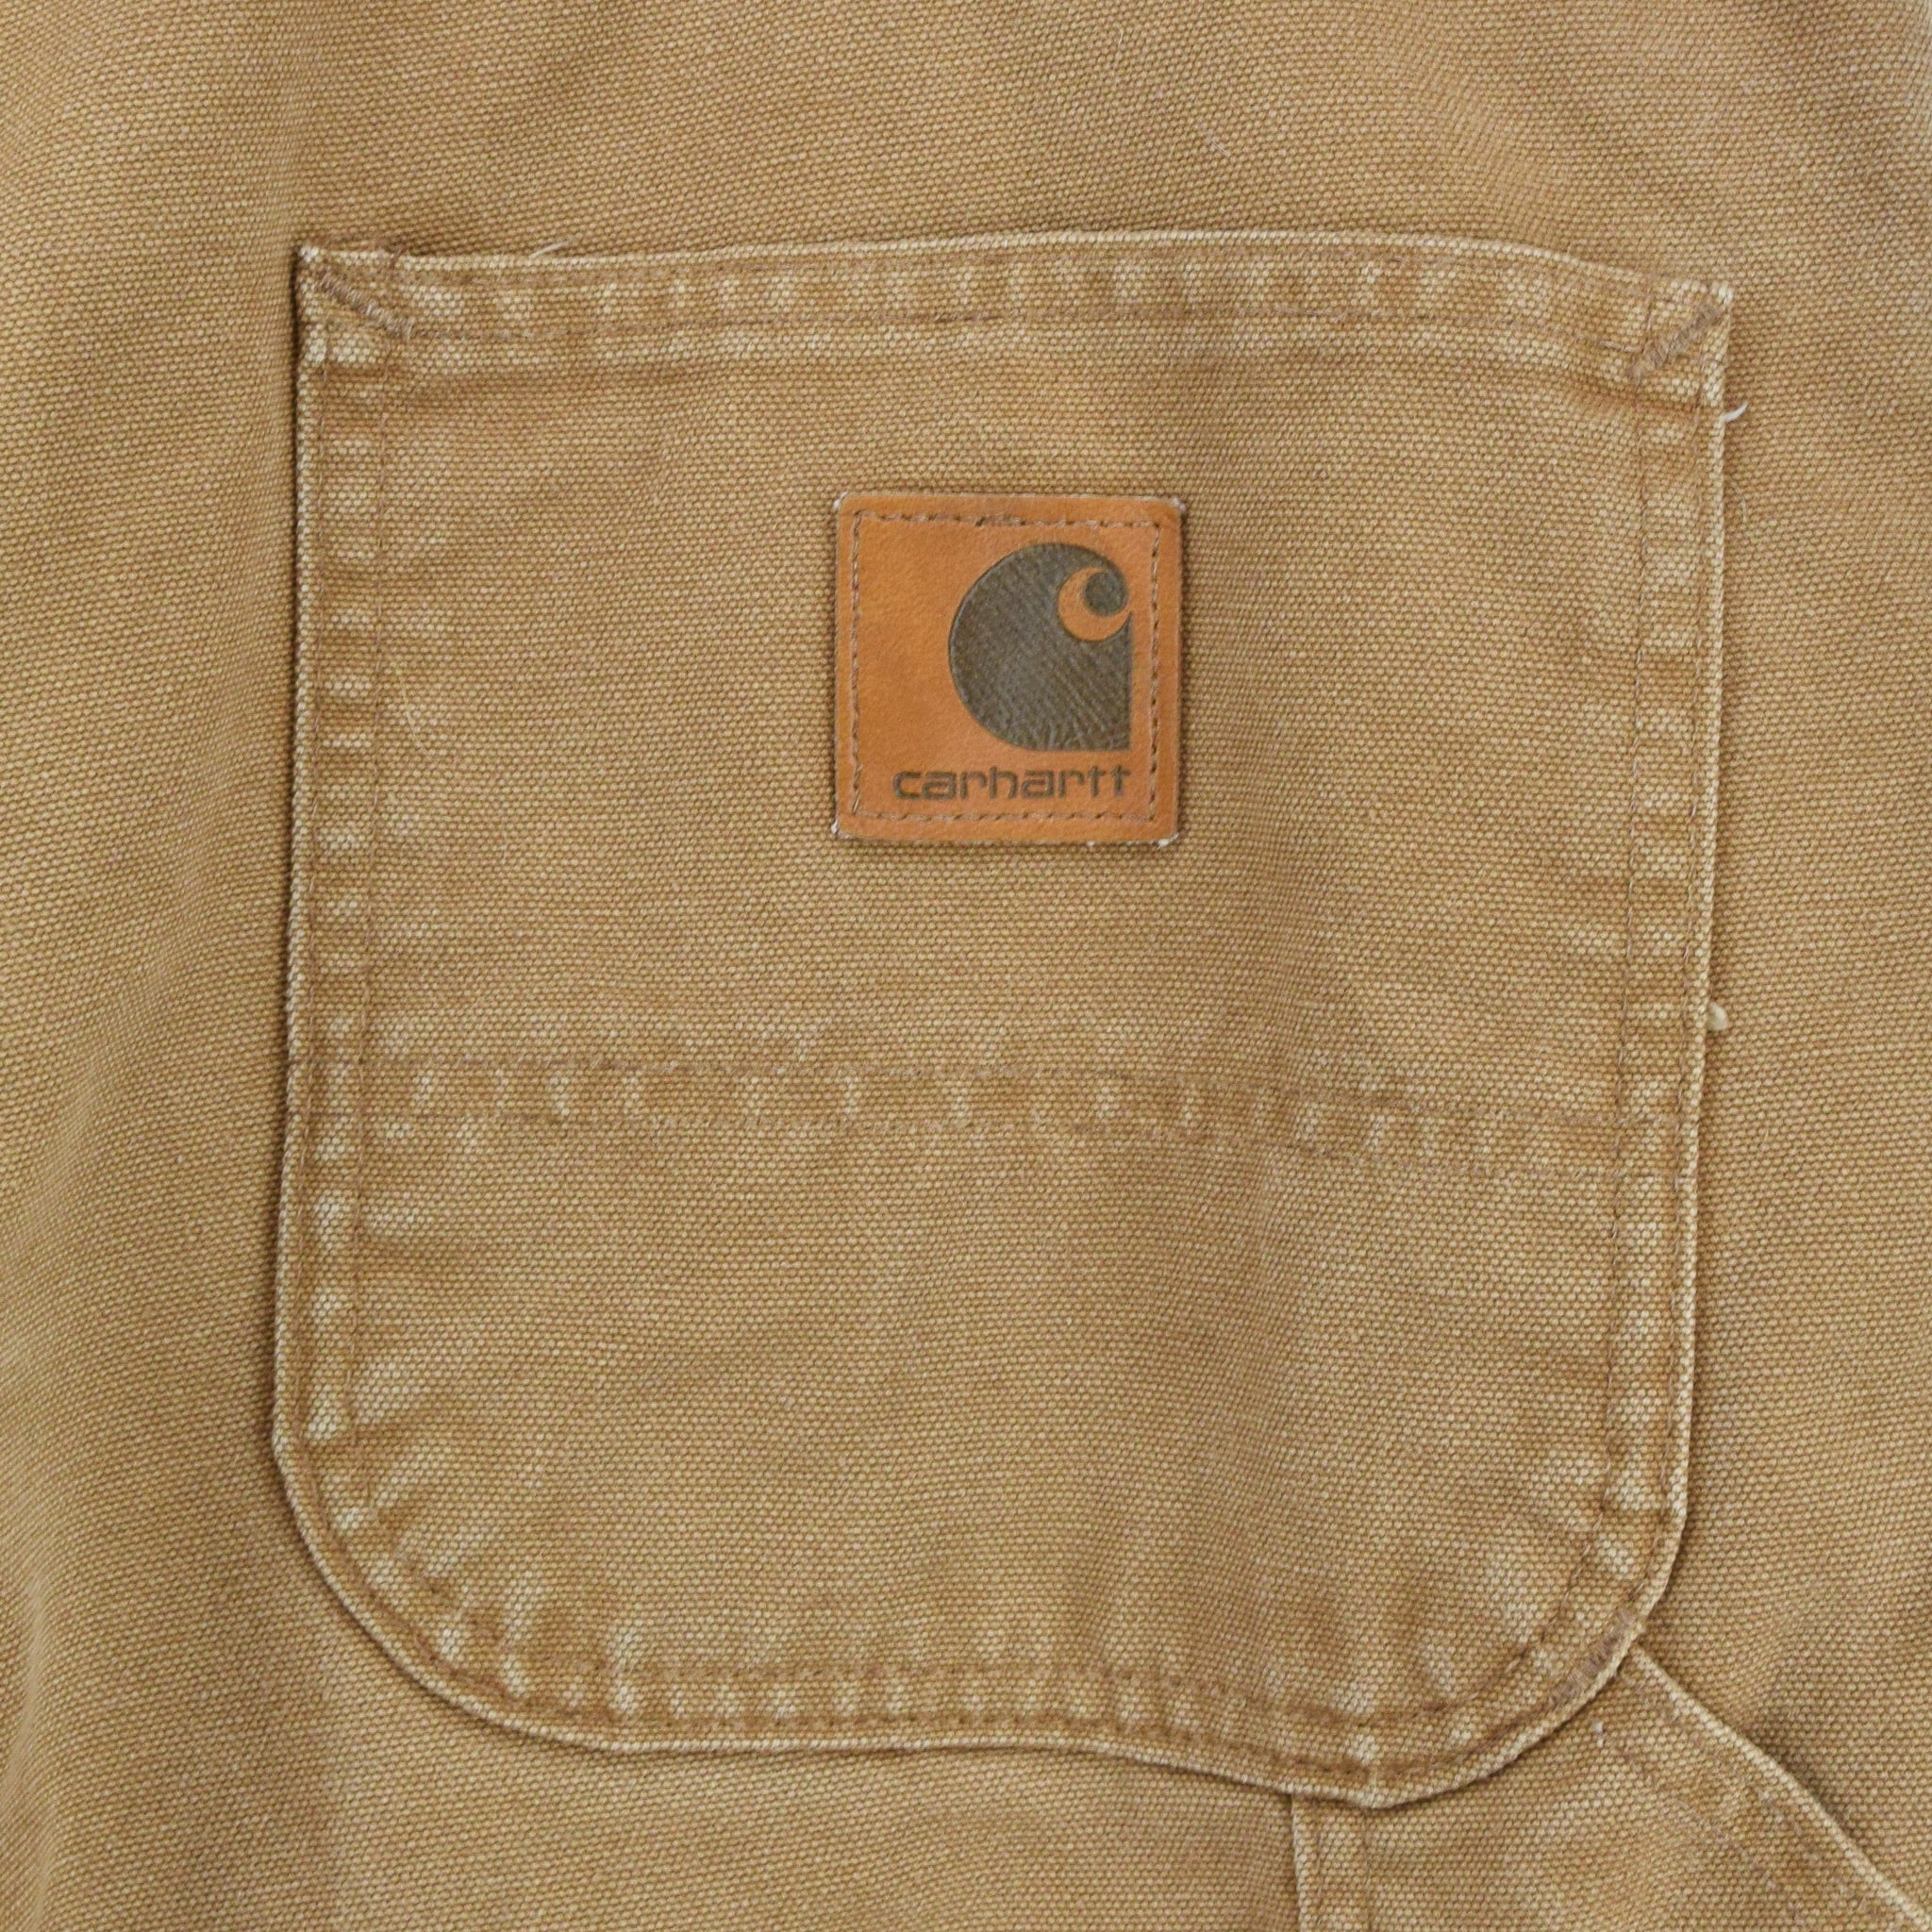 Vintage Carhartt Duck Canvas Utility Work Pant Blanket Lined USA Made 38 W 30 L back pocket